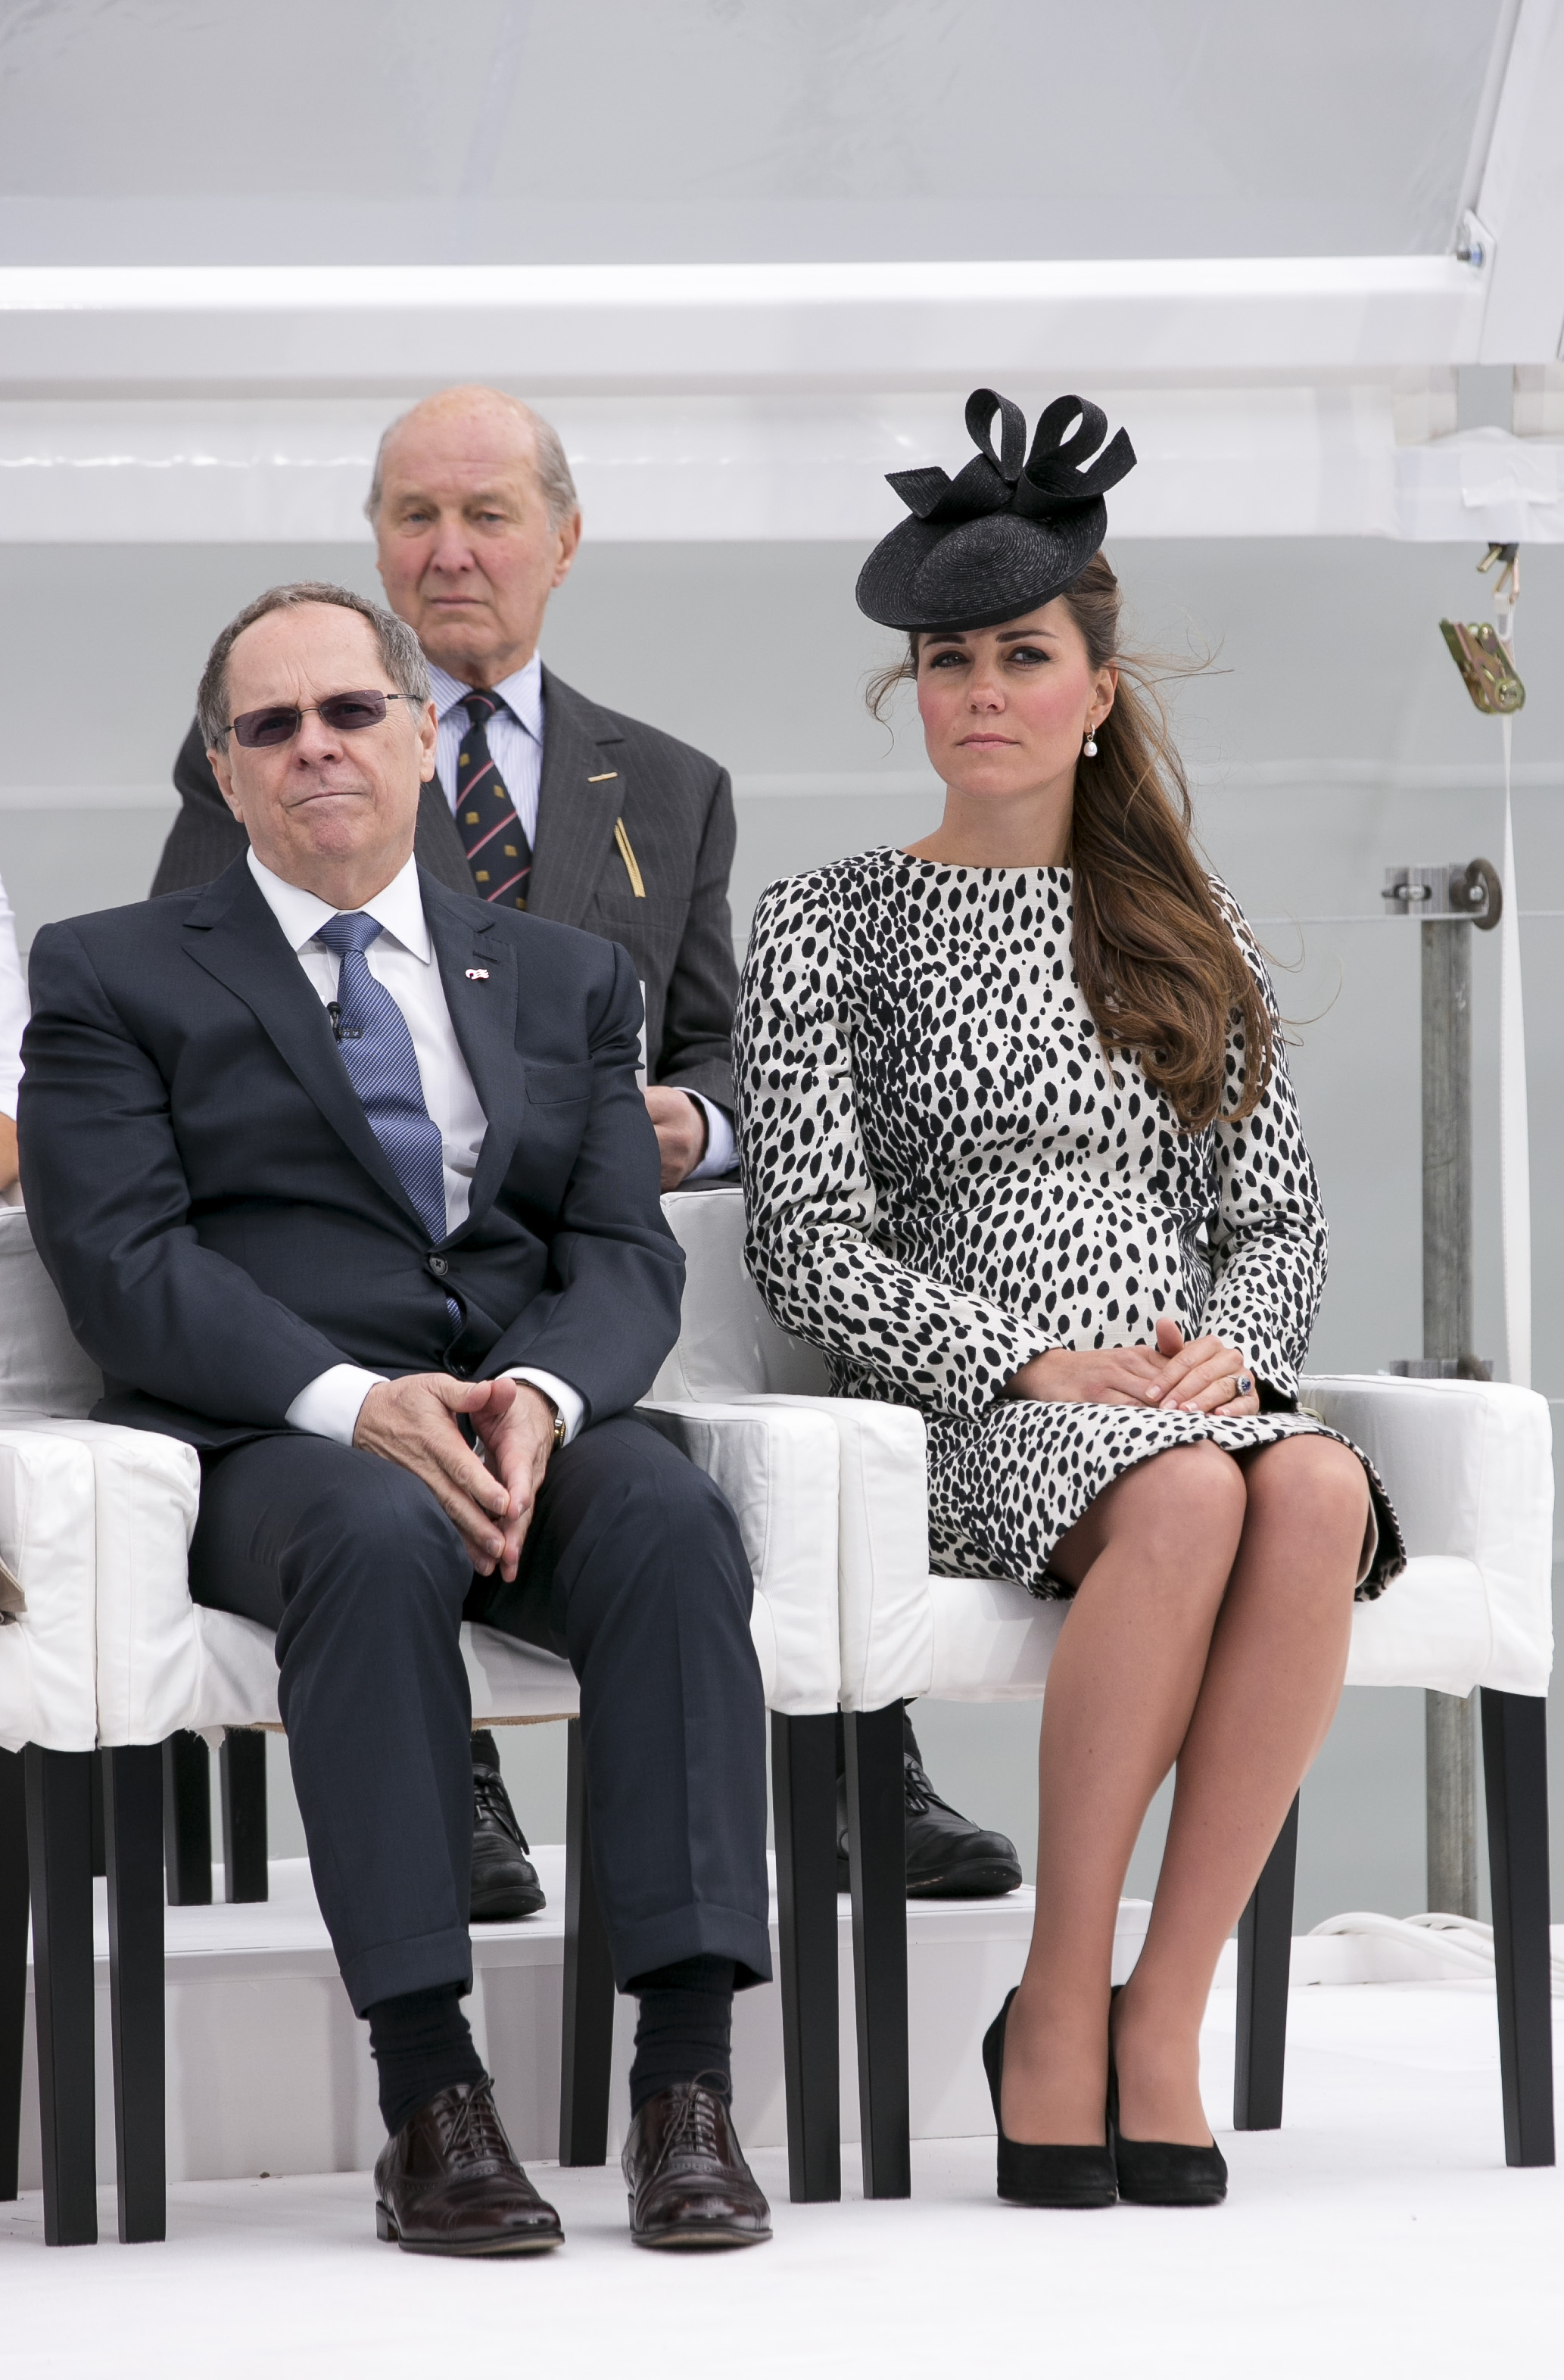 [Gallery] Photos from the Royal Princess naming ceremony